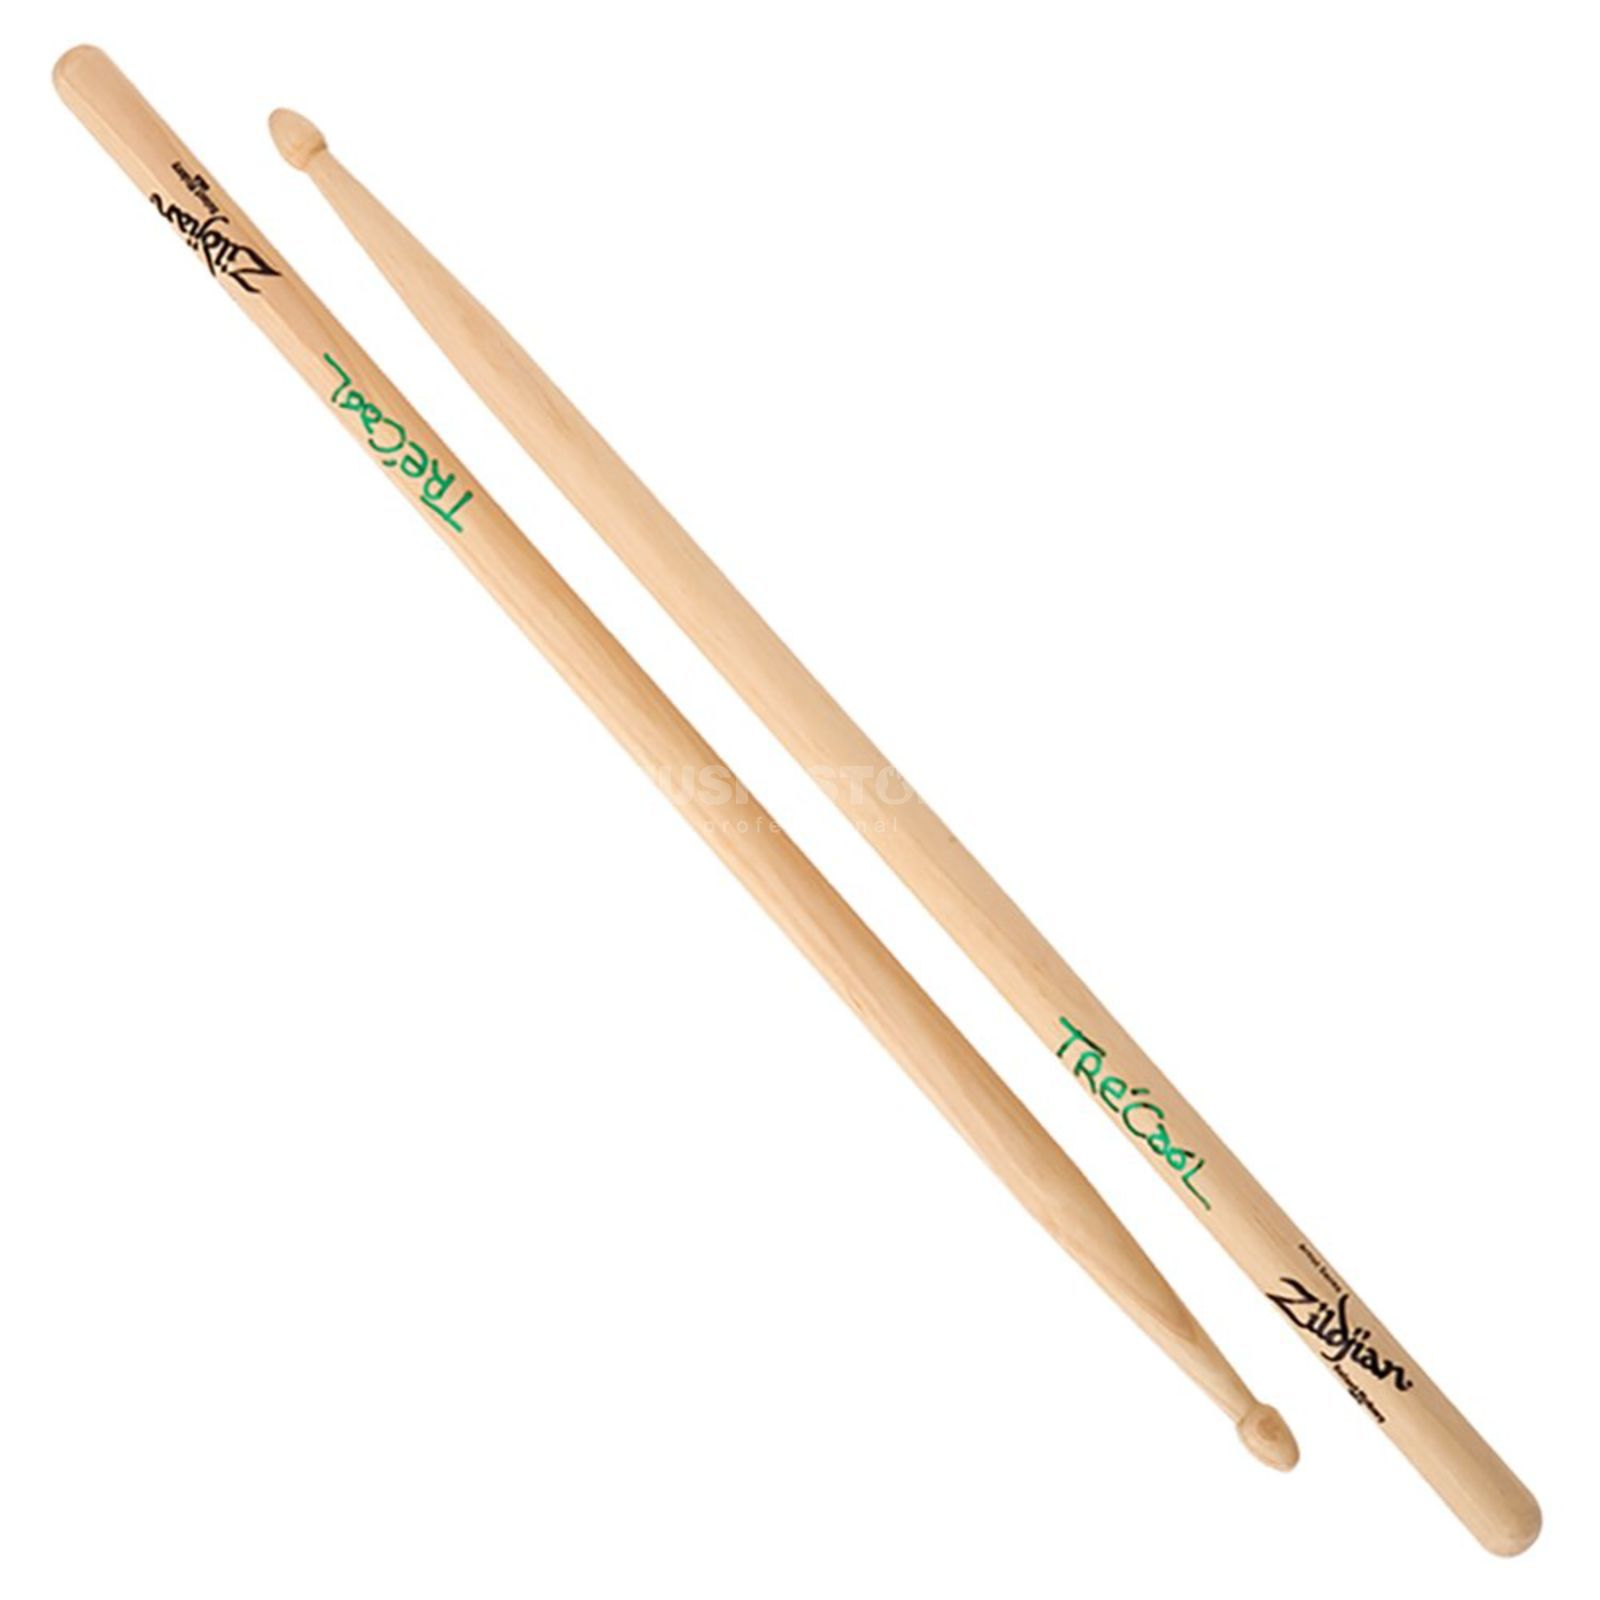 Zildjian Tre Cool Hickory Sticks Natural Finish, Wood Tip Изображение товара